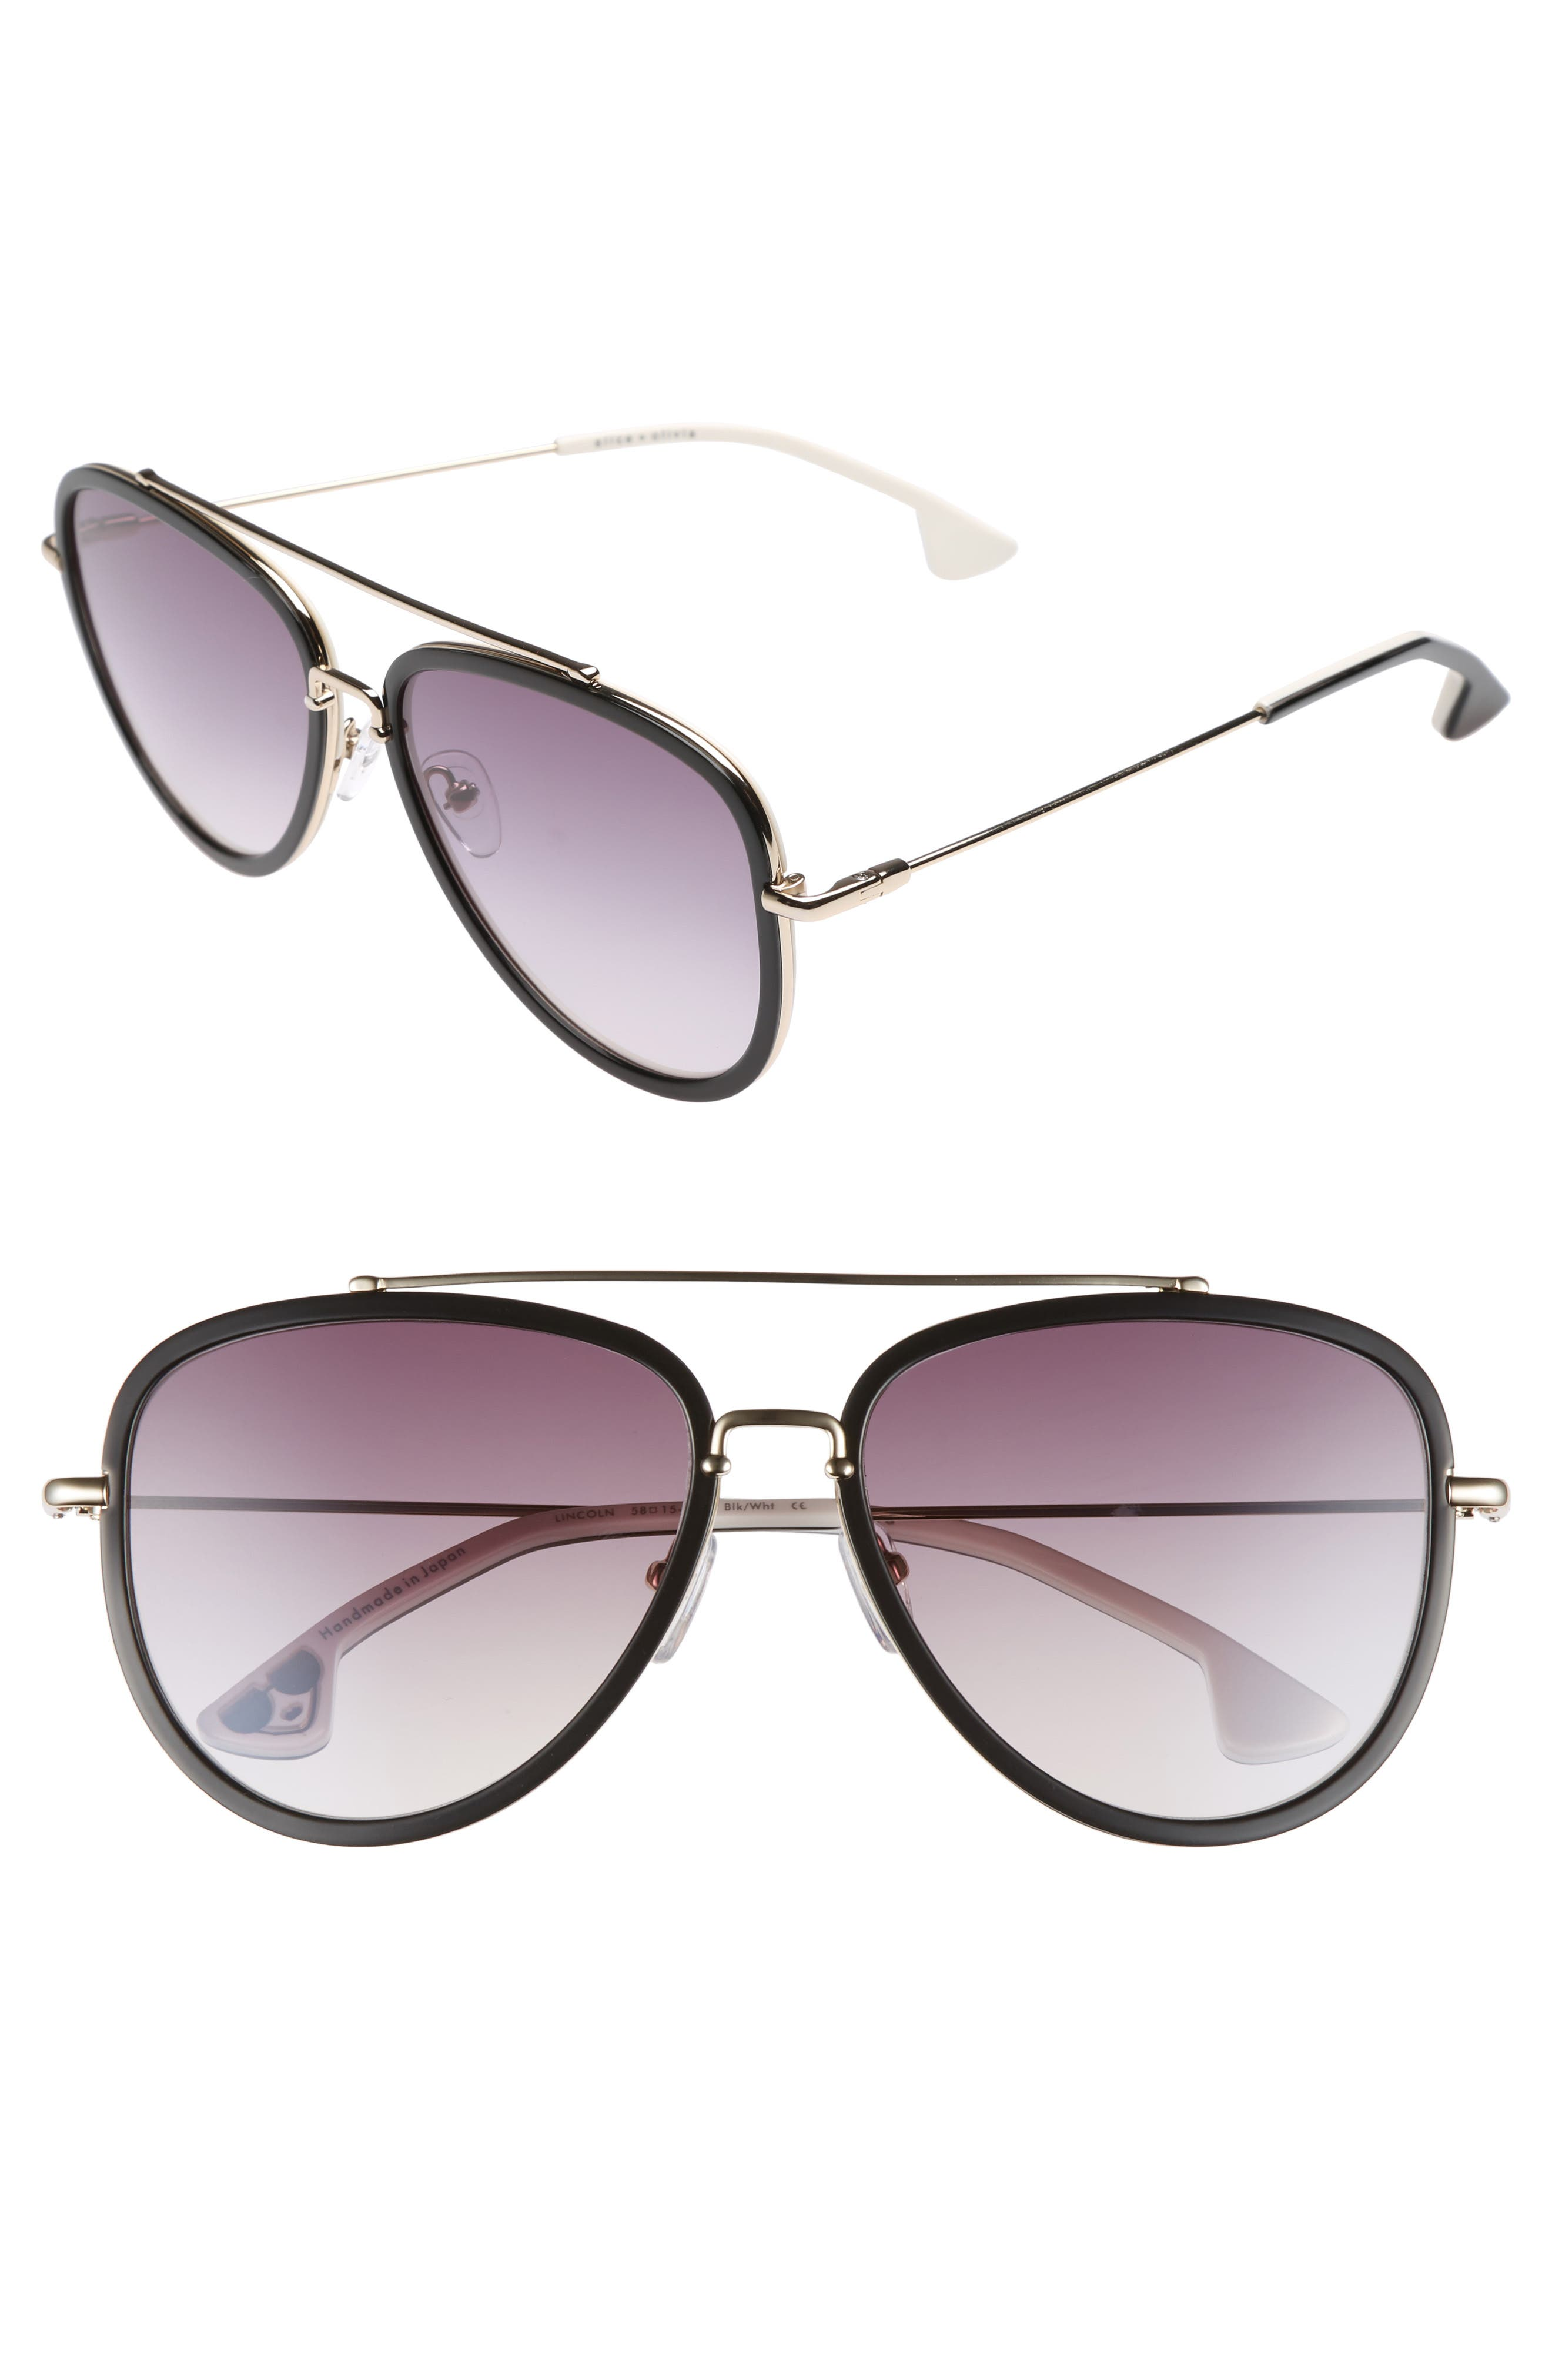 Lincoln 58mm Aviator Sunglasses,                             Main thumbnail 1, color,